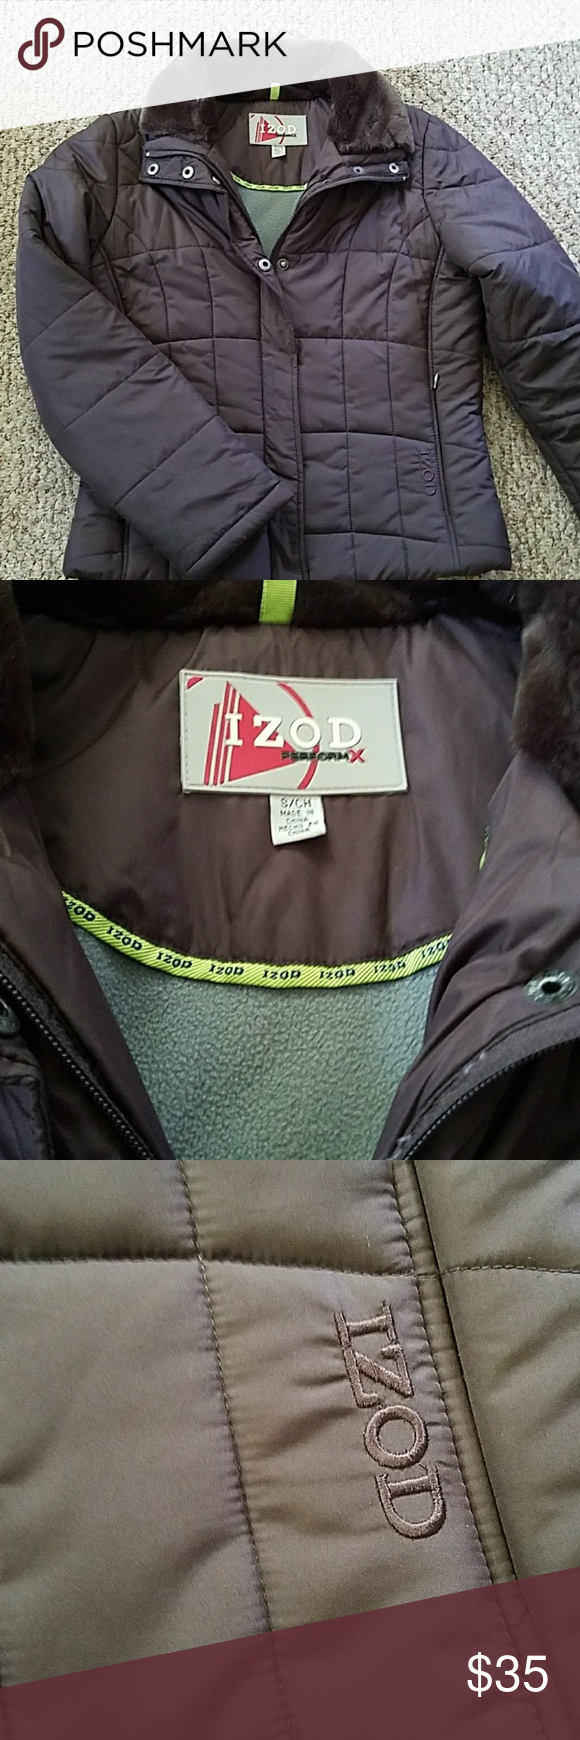 Ladies Izod Winter Coat Small Excellent Condition Izod Jackets Coats Puffers Clothes Design Fashion Design Women Shopping [ 1740 x 580 Pixel ]